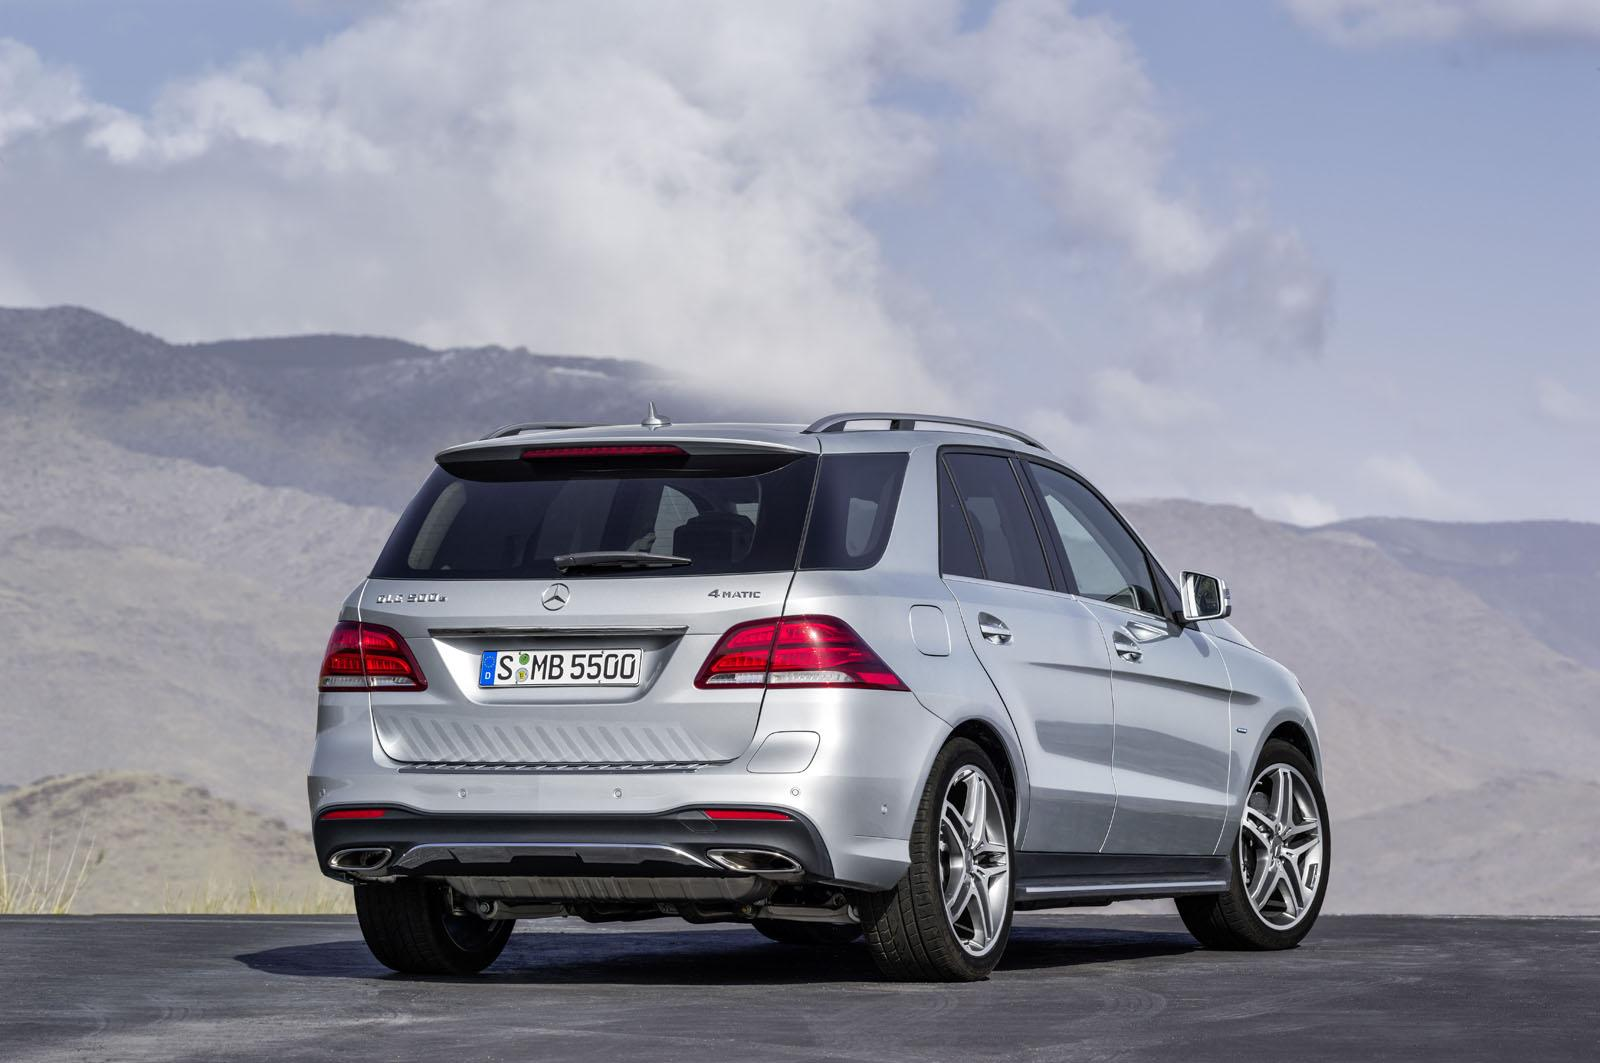 Mercedes GLE rear three quarter official image